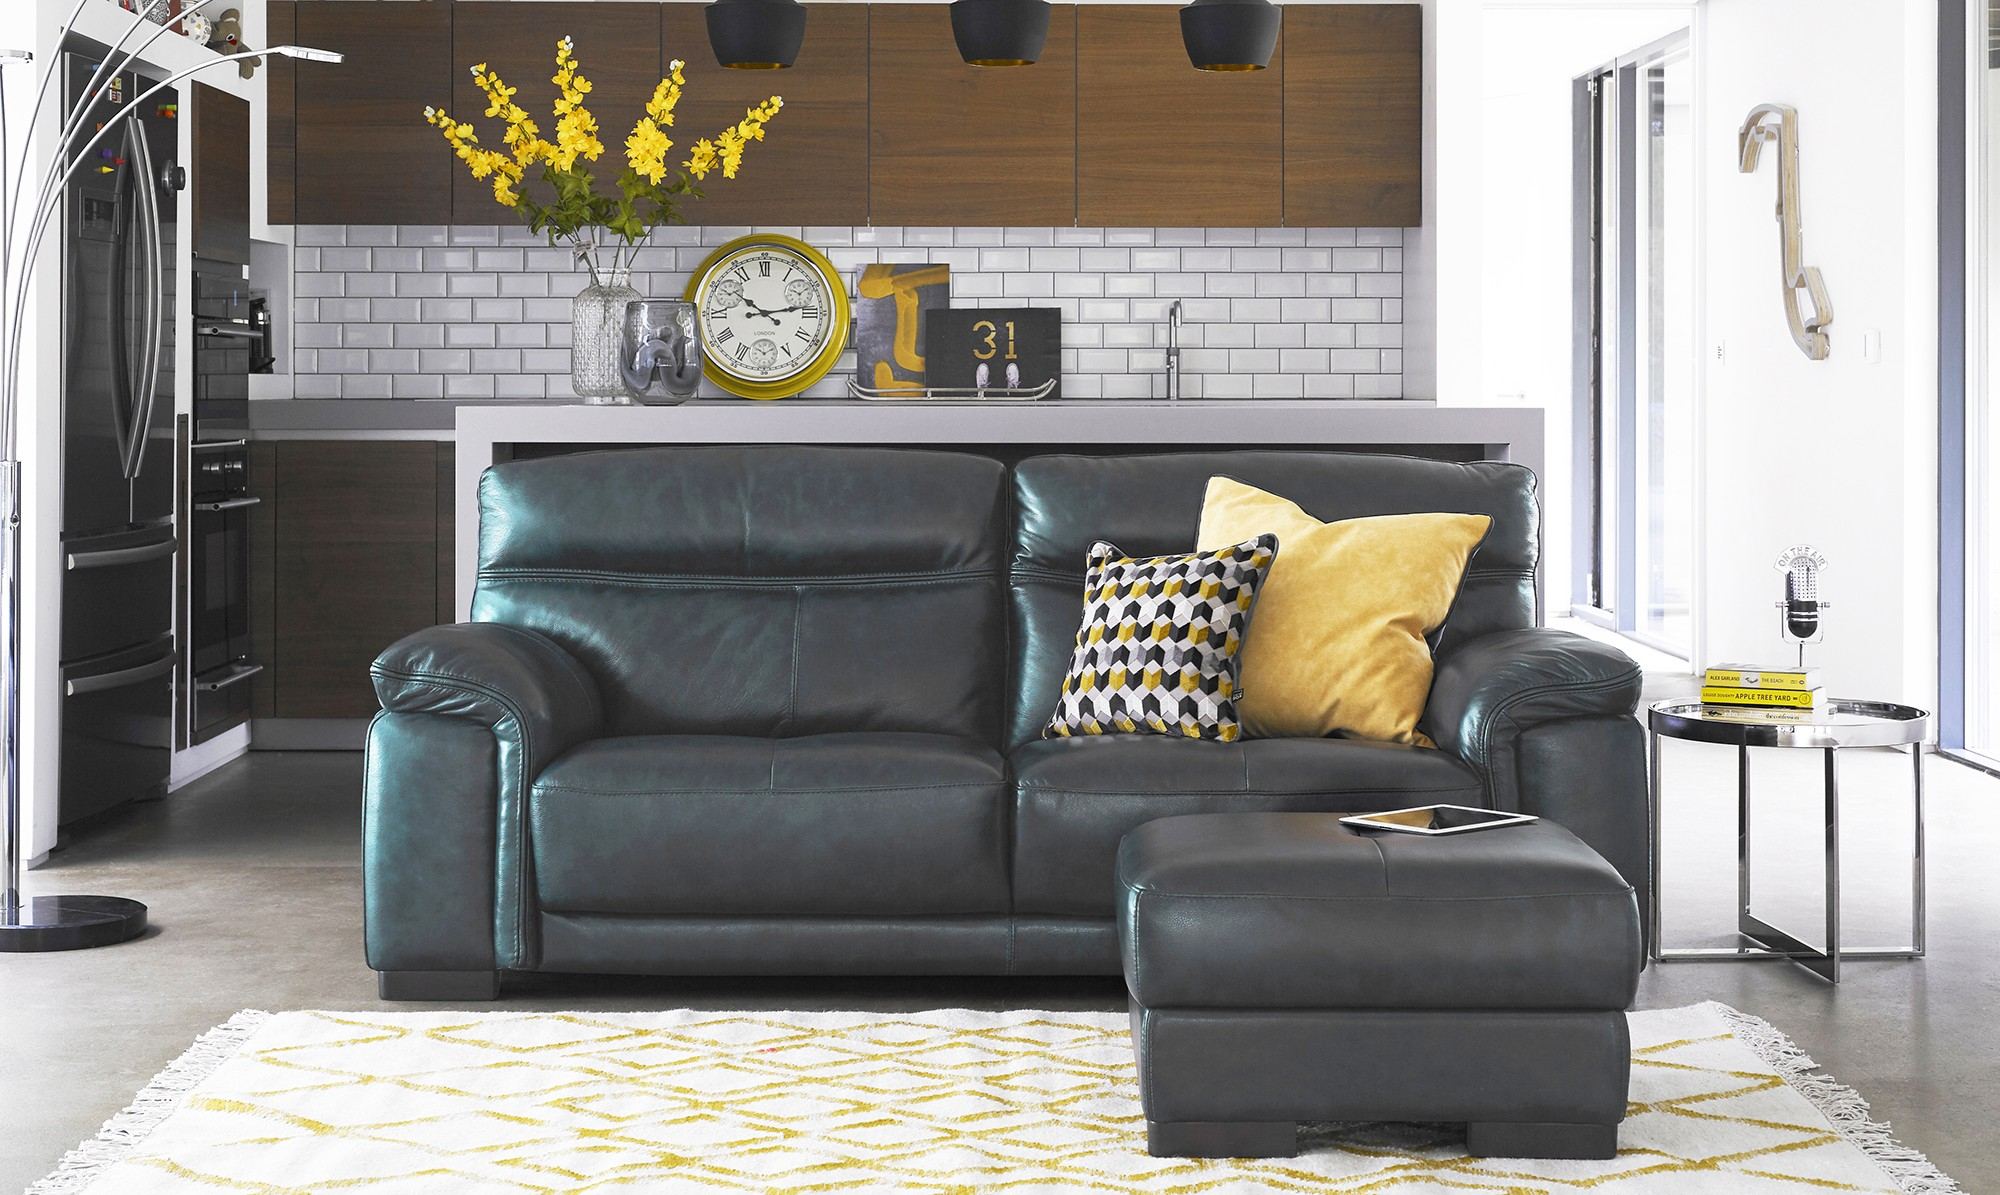 pizzaro corner sofa with rug